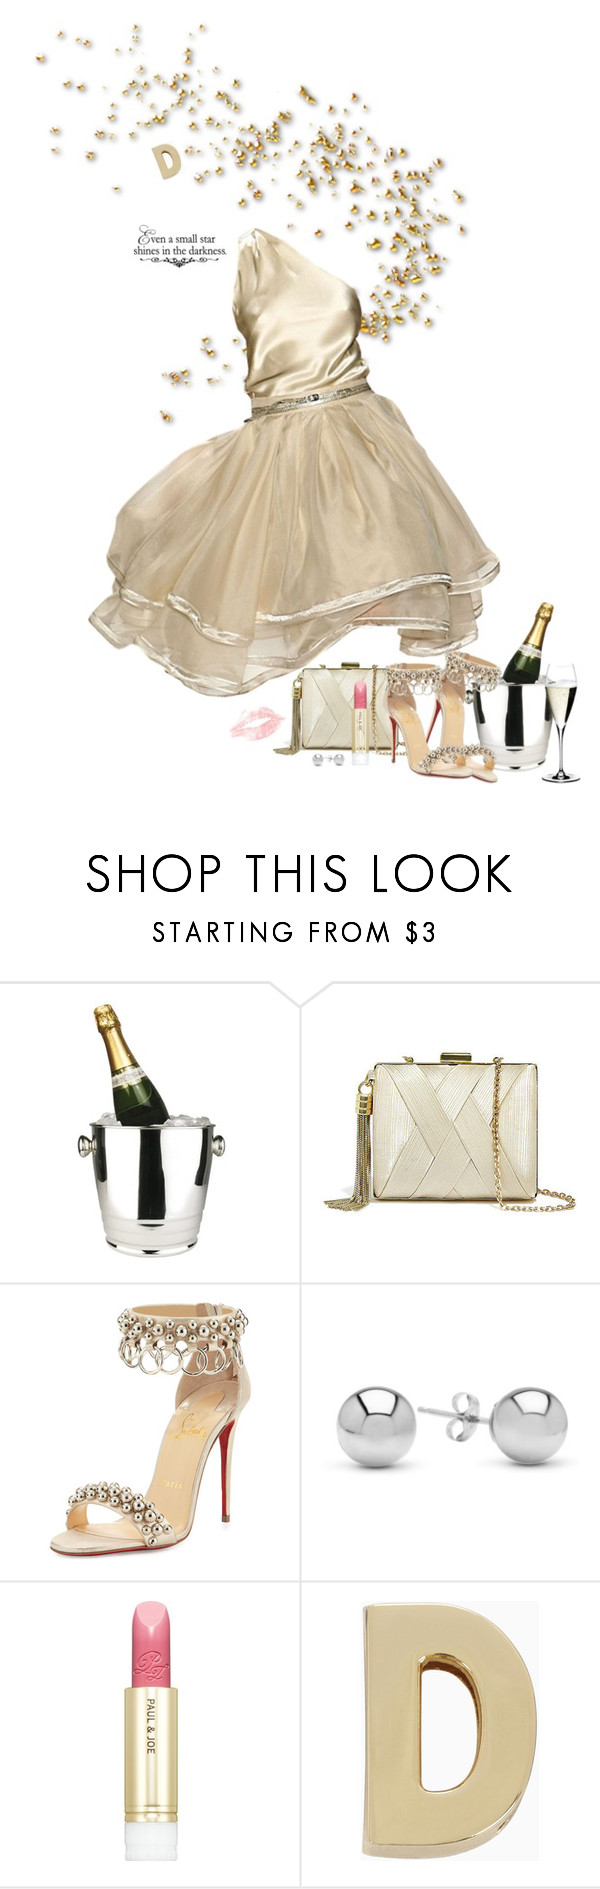 """""""Champagne Kisses"""" by duci ❤ liked on Polyvore featuring Winco, GUESS by Marciano, Dennis Basso, Christian Louboutin, WALL, Jewelonfire, Paul & Joe, BCBGeneration and Riedel"""